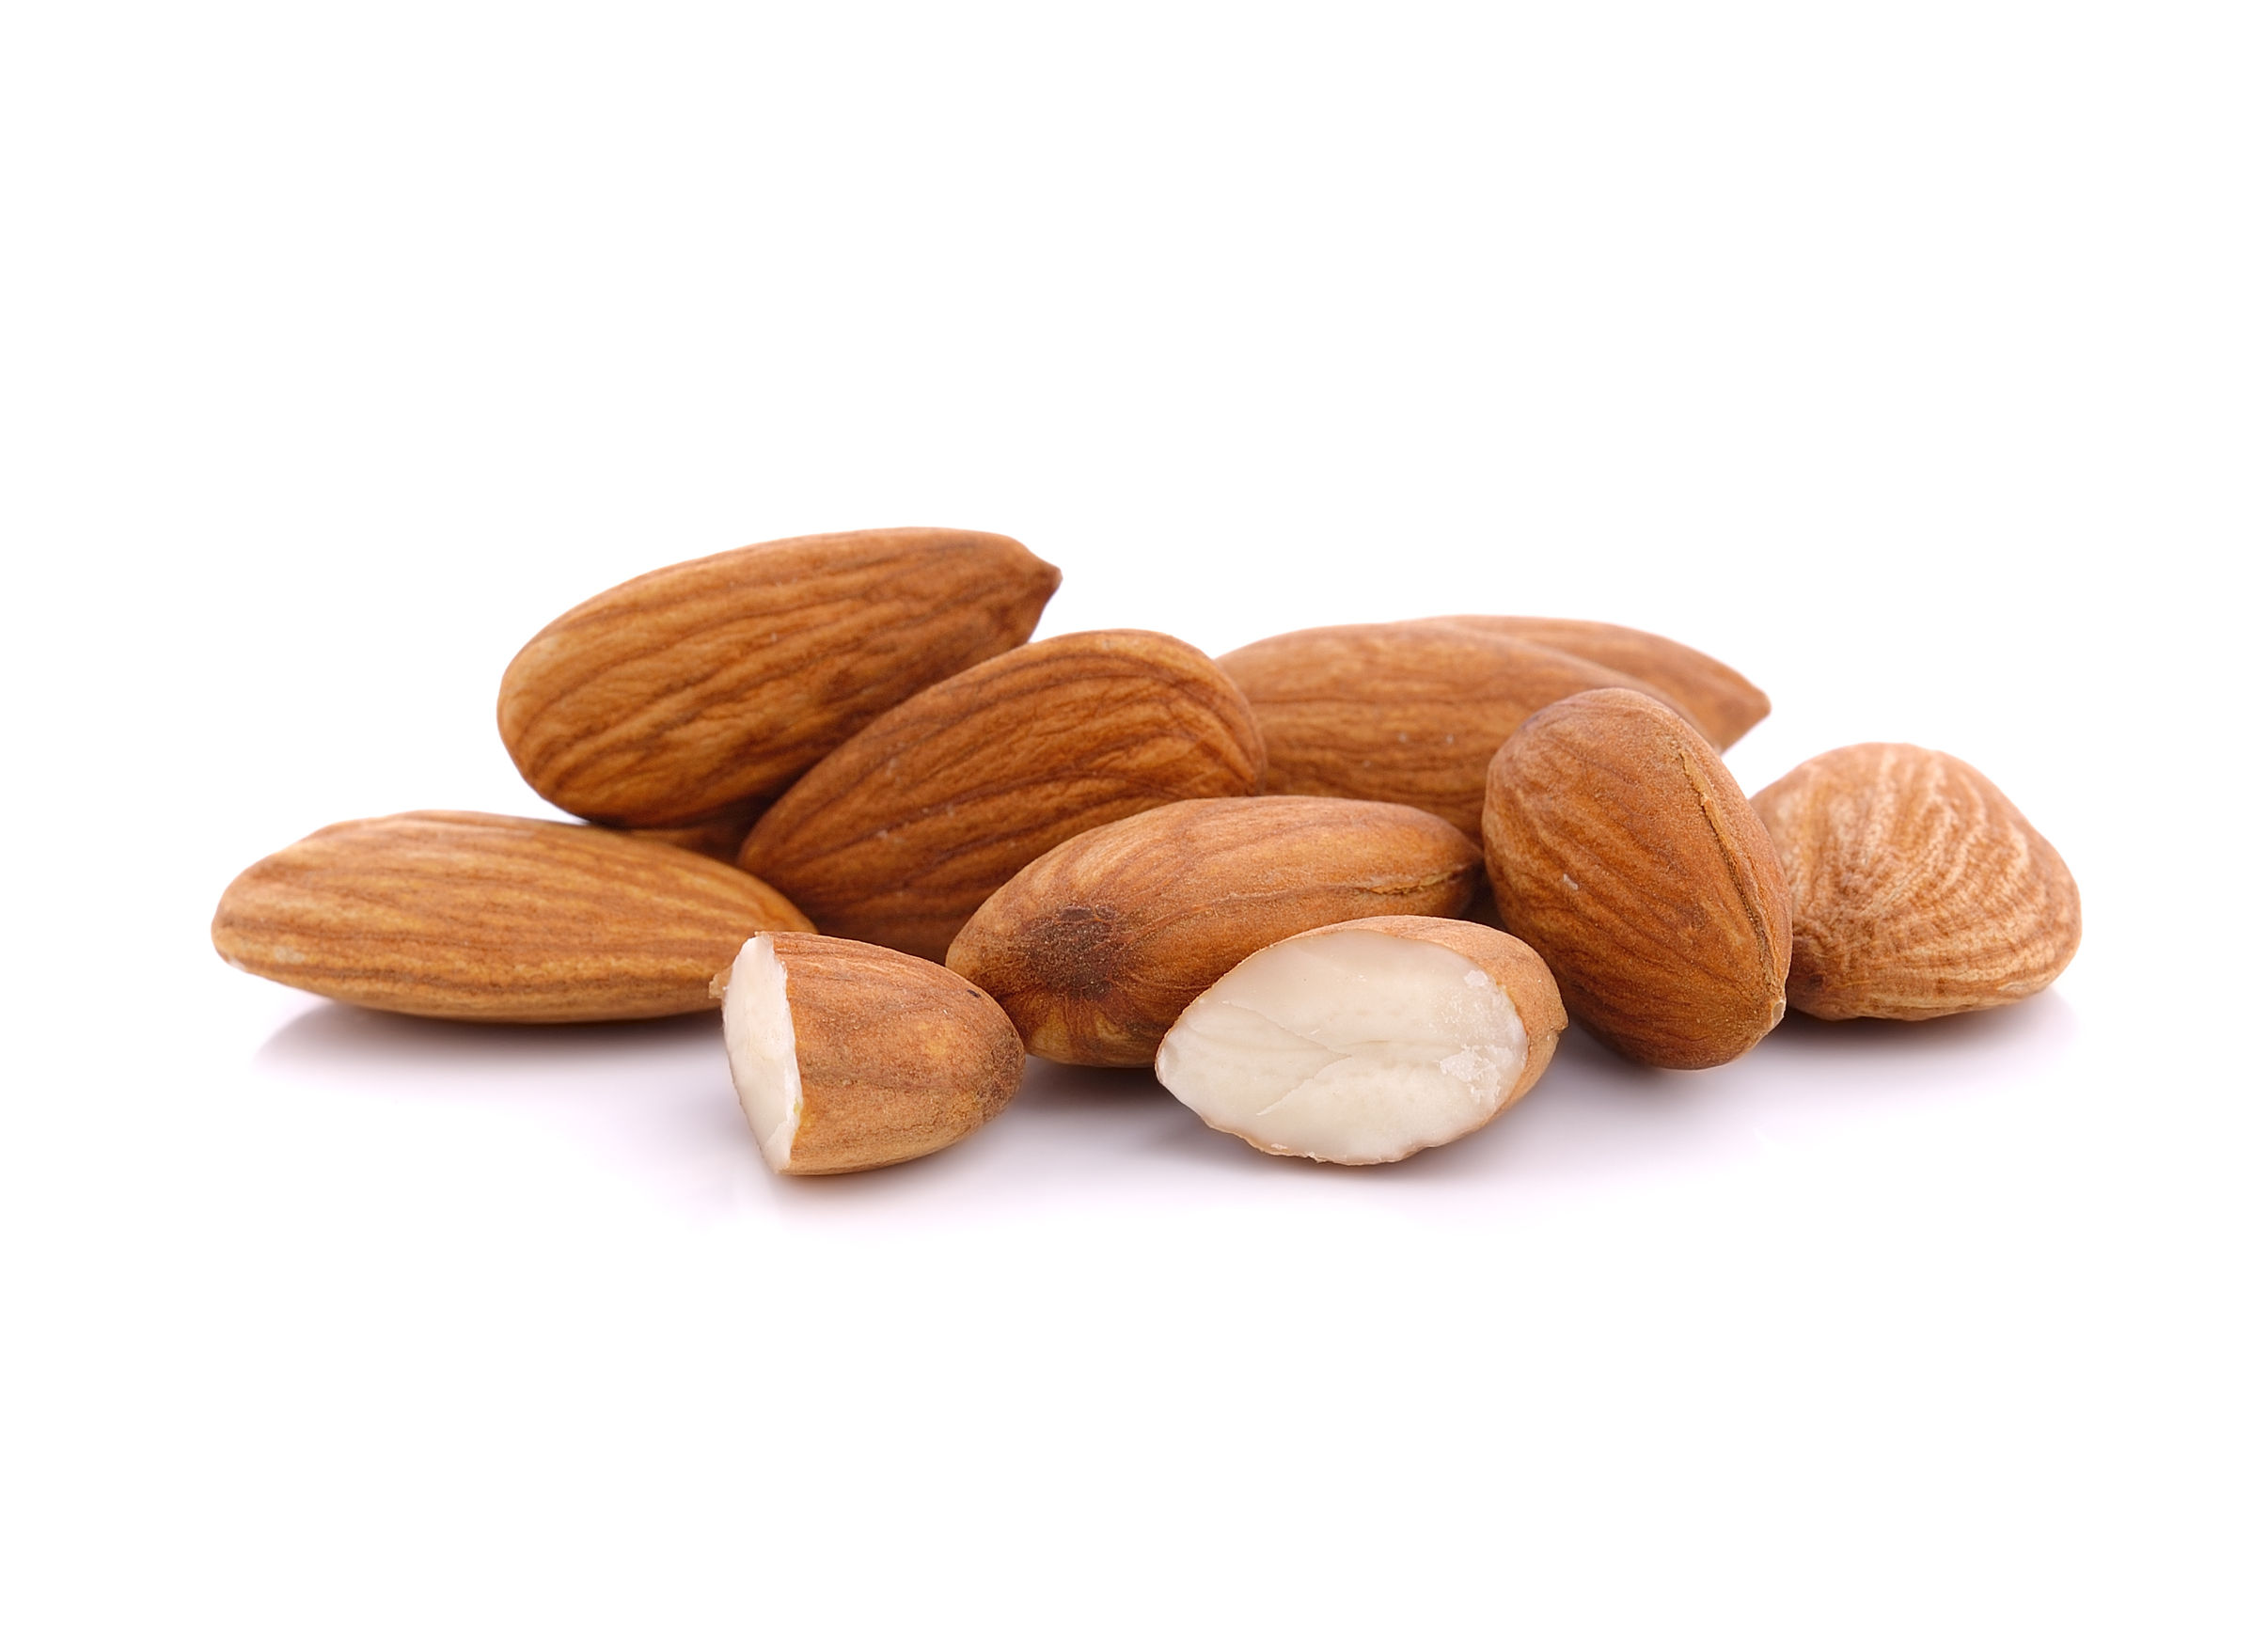 48129827 - almond nuts isolated on white background